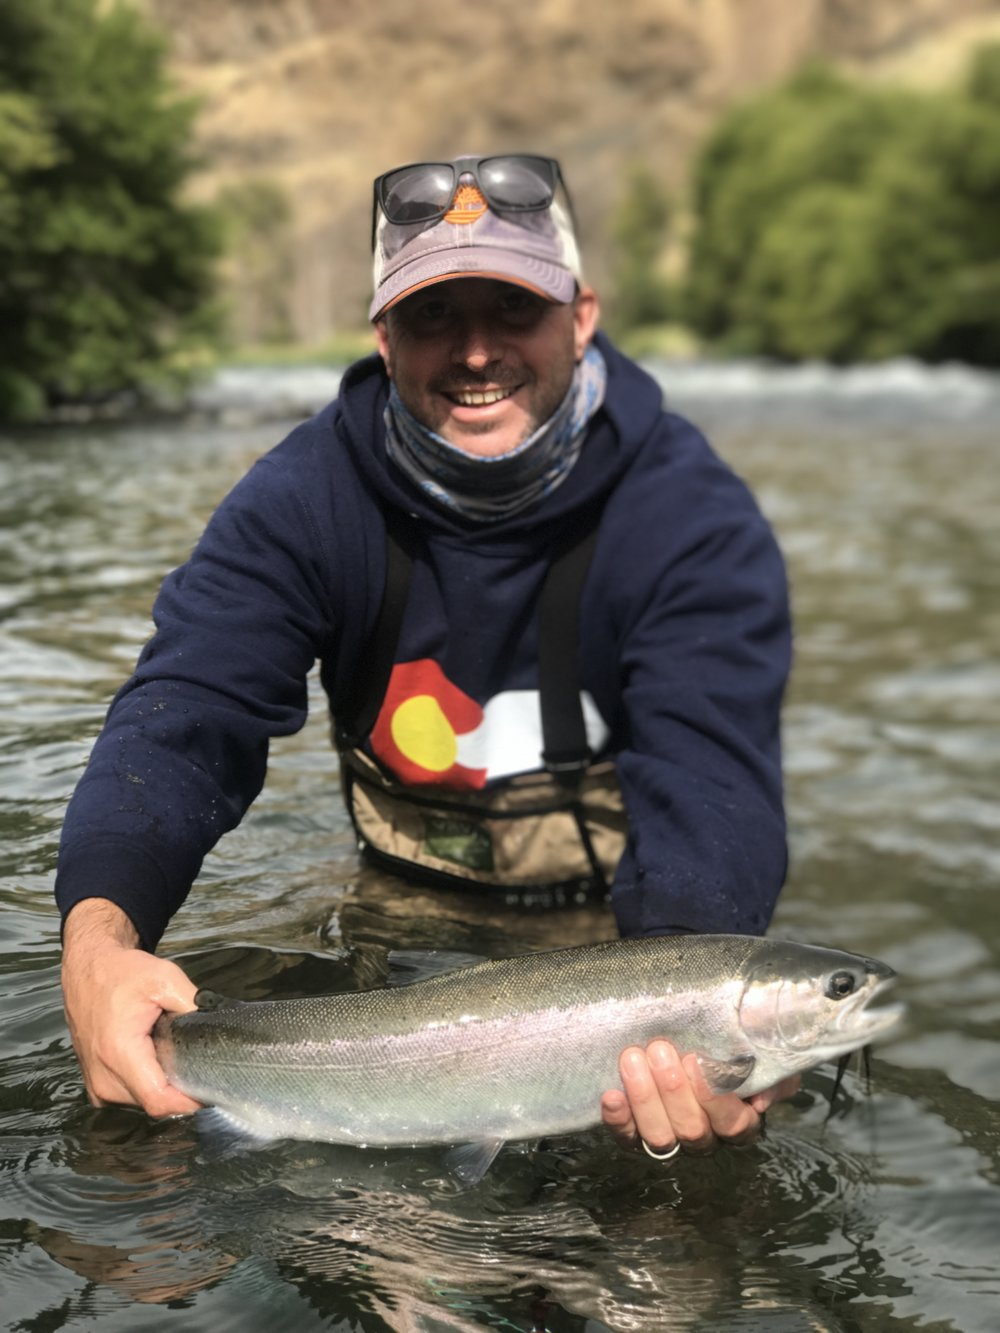 A buzzer beater steelhead, caught just before calling it a trip